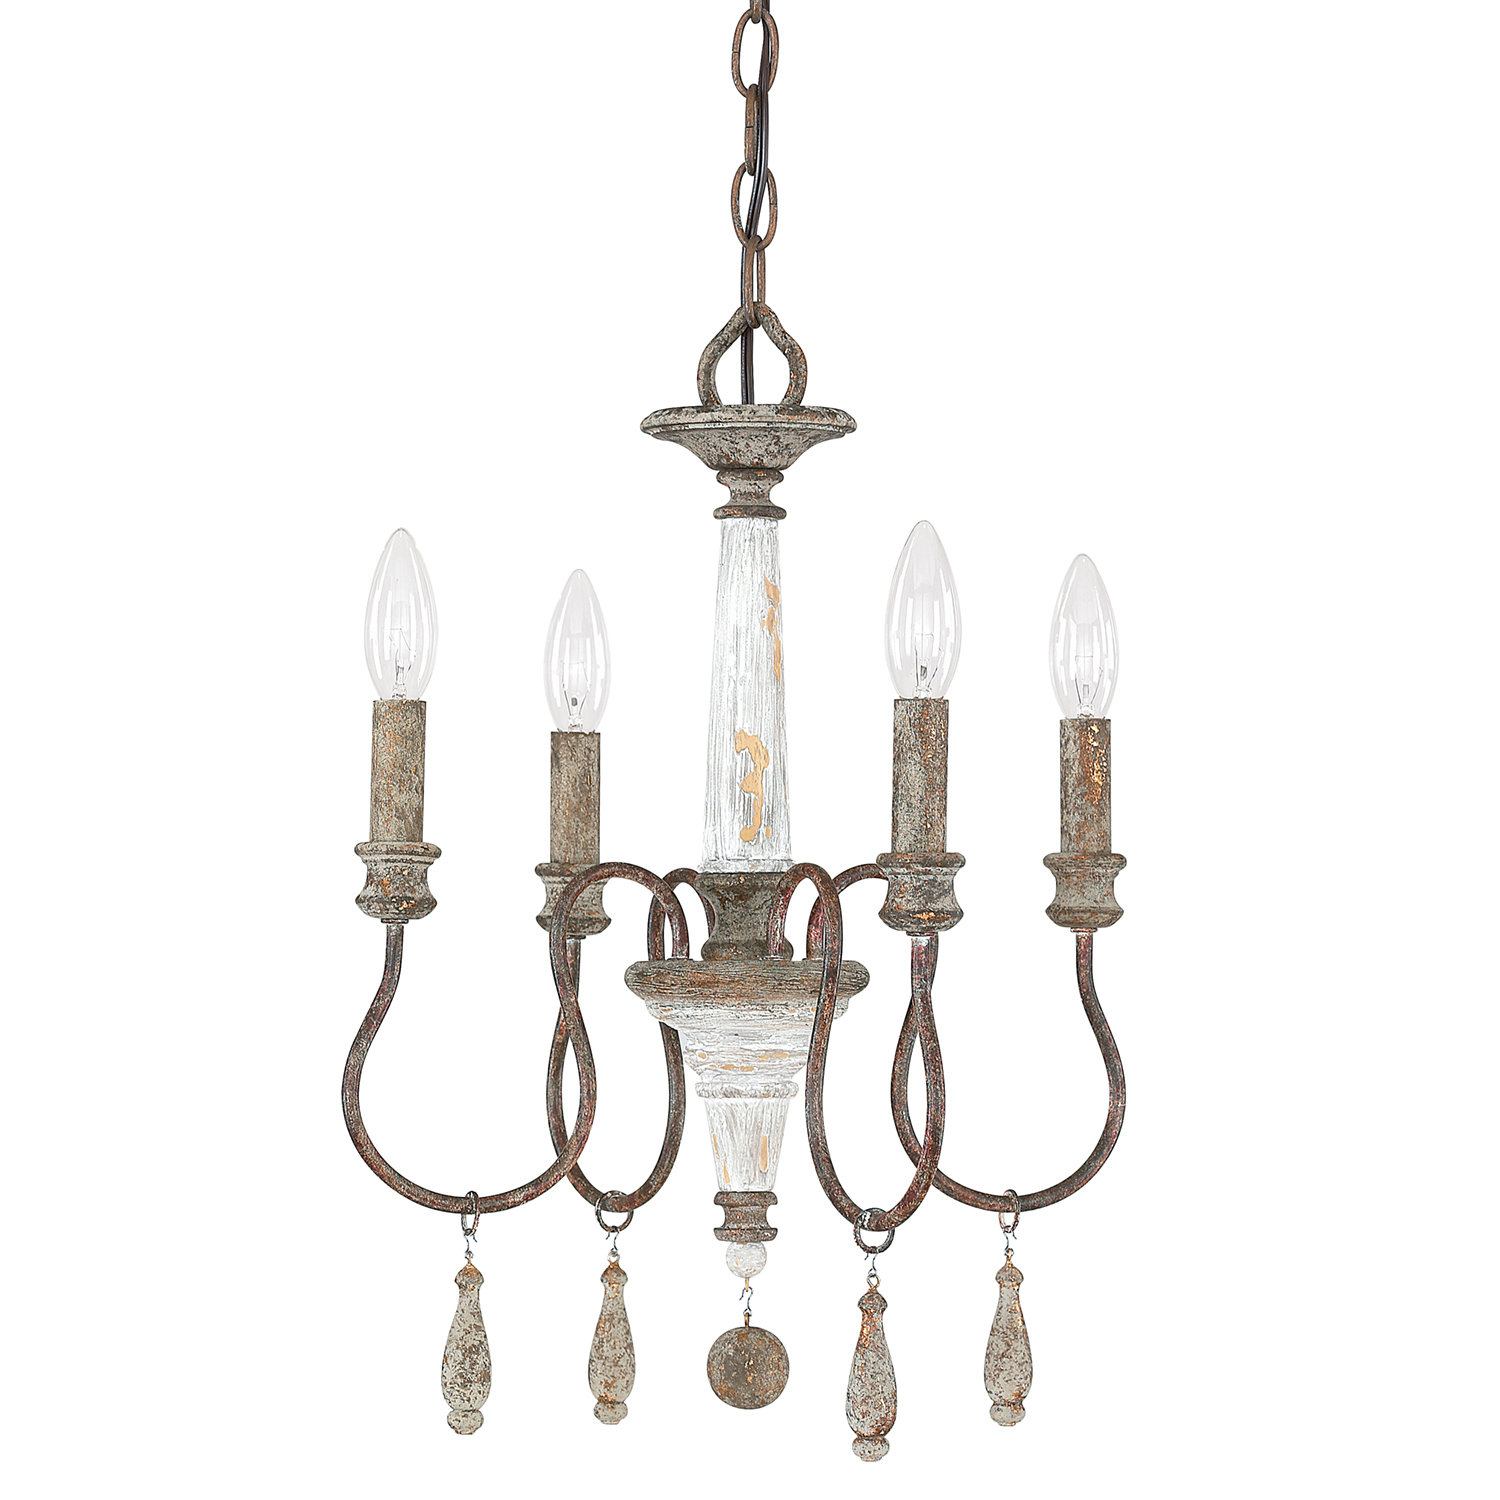 Armande Candle Style Chandelier in Corneau 5-Light Chandeliers (Image 5 of 30)